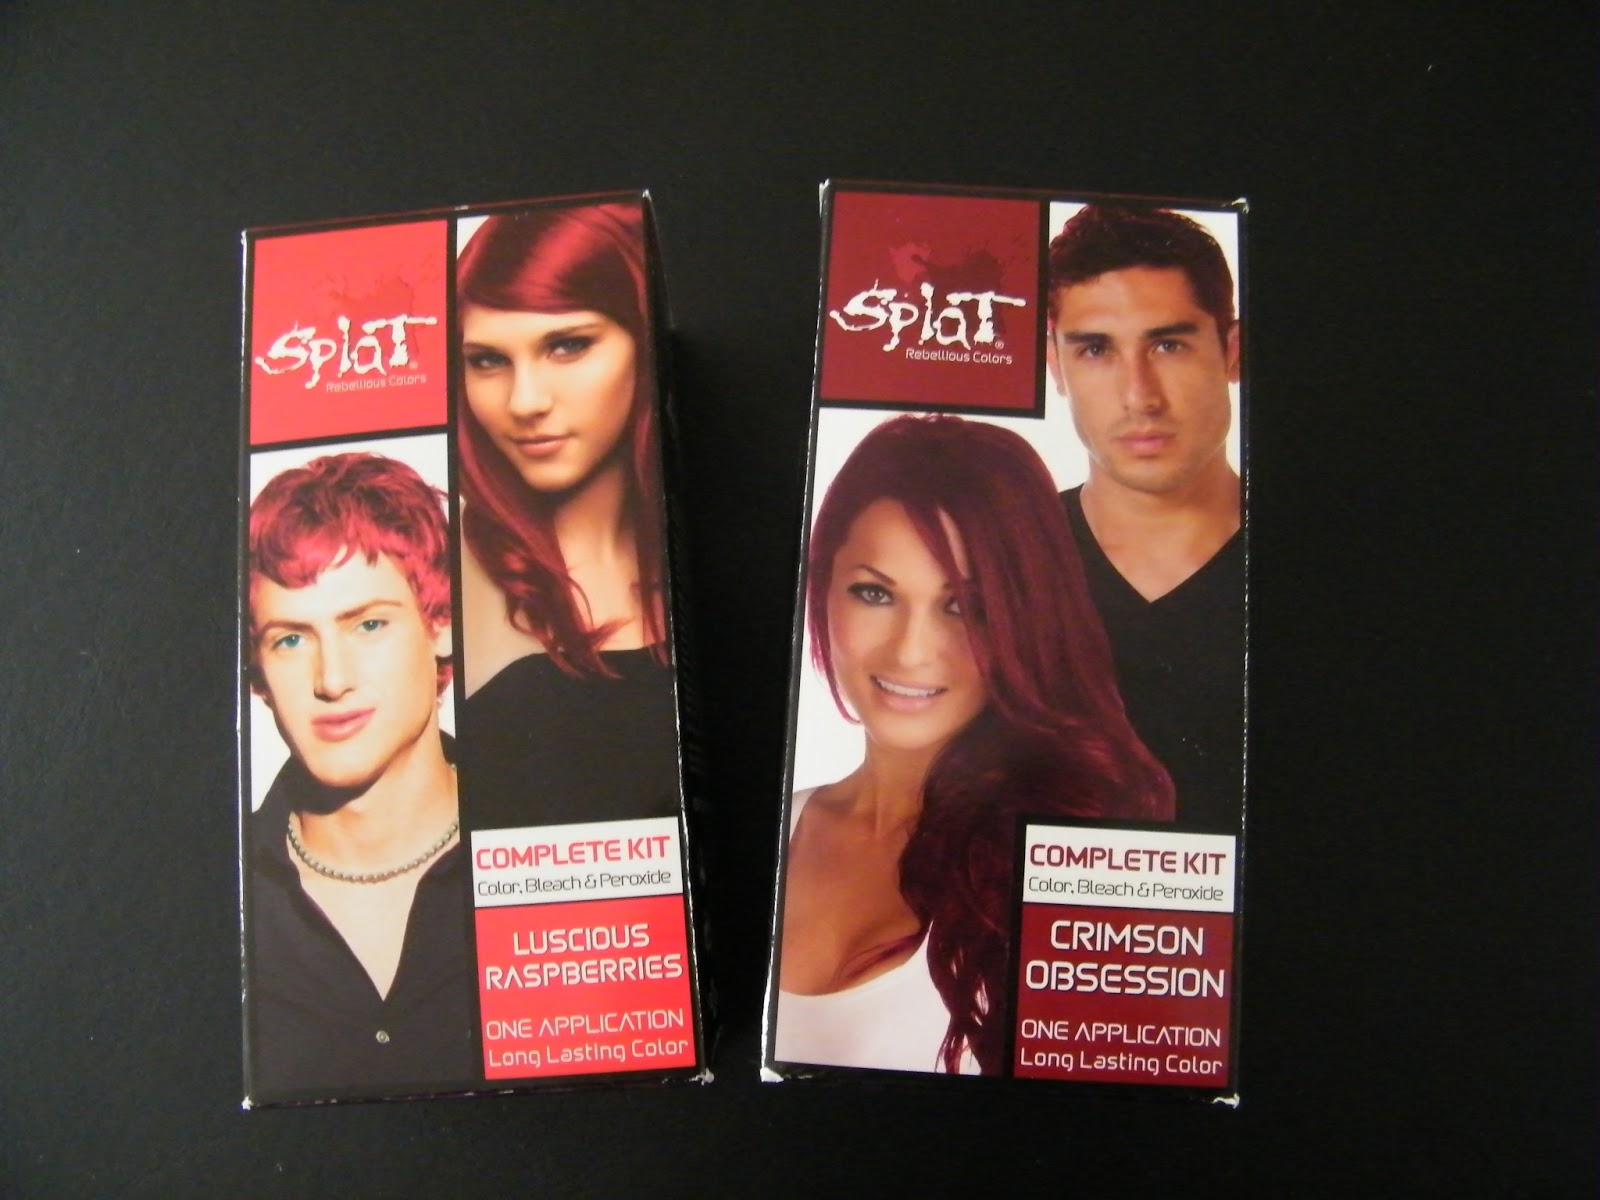 Splat Hair Color This Is The Same Brand I Used A Few Years Back To Dye My Pink Hadn T Had Any Problems With It So Figured Why Not